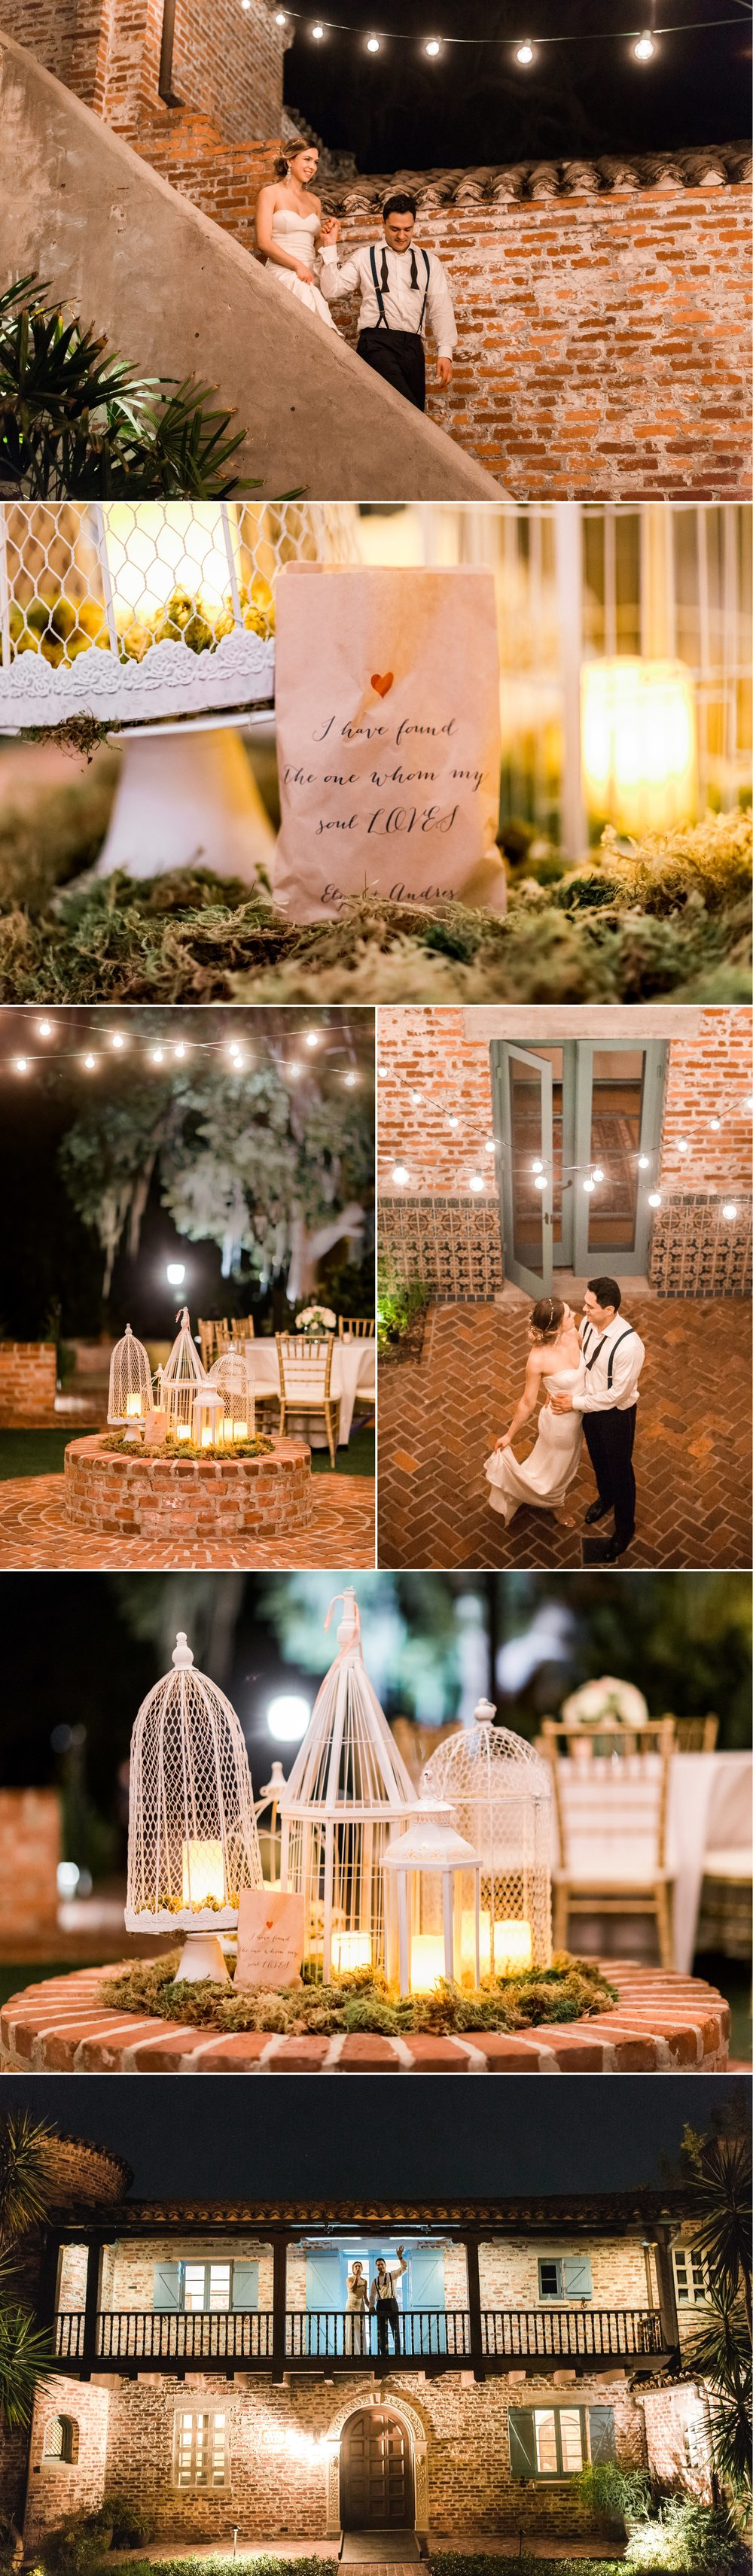 Boho Chic Blush Gold Wedding at Casa Feliz Winter Park -Andres + Elya 193.jpg